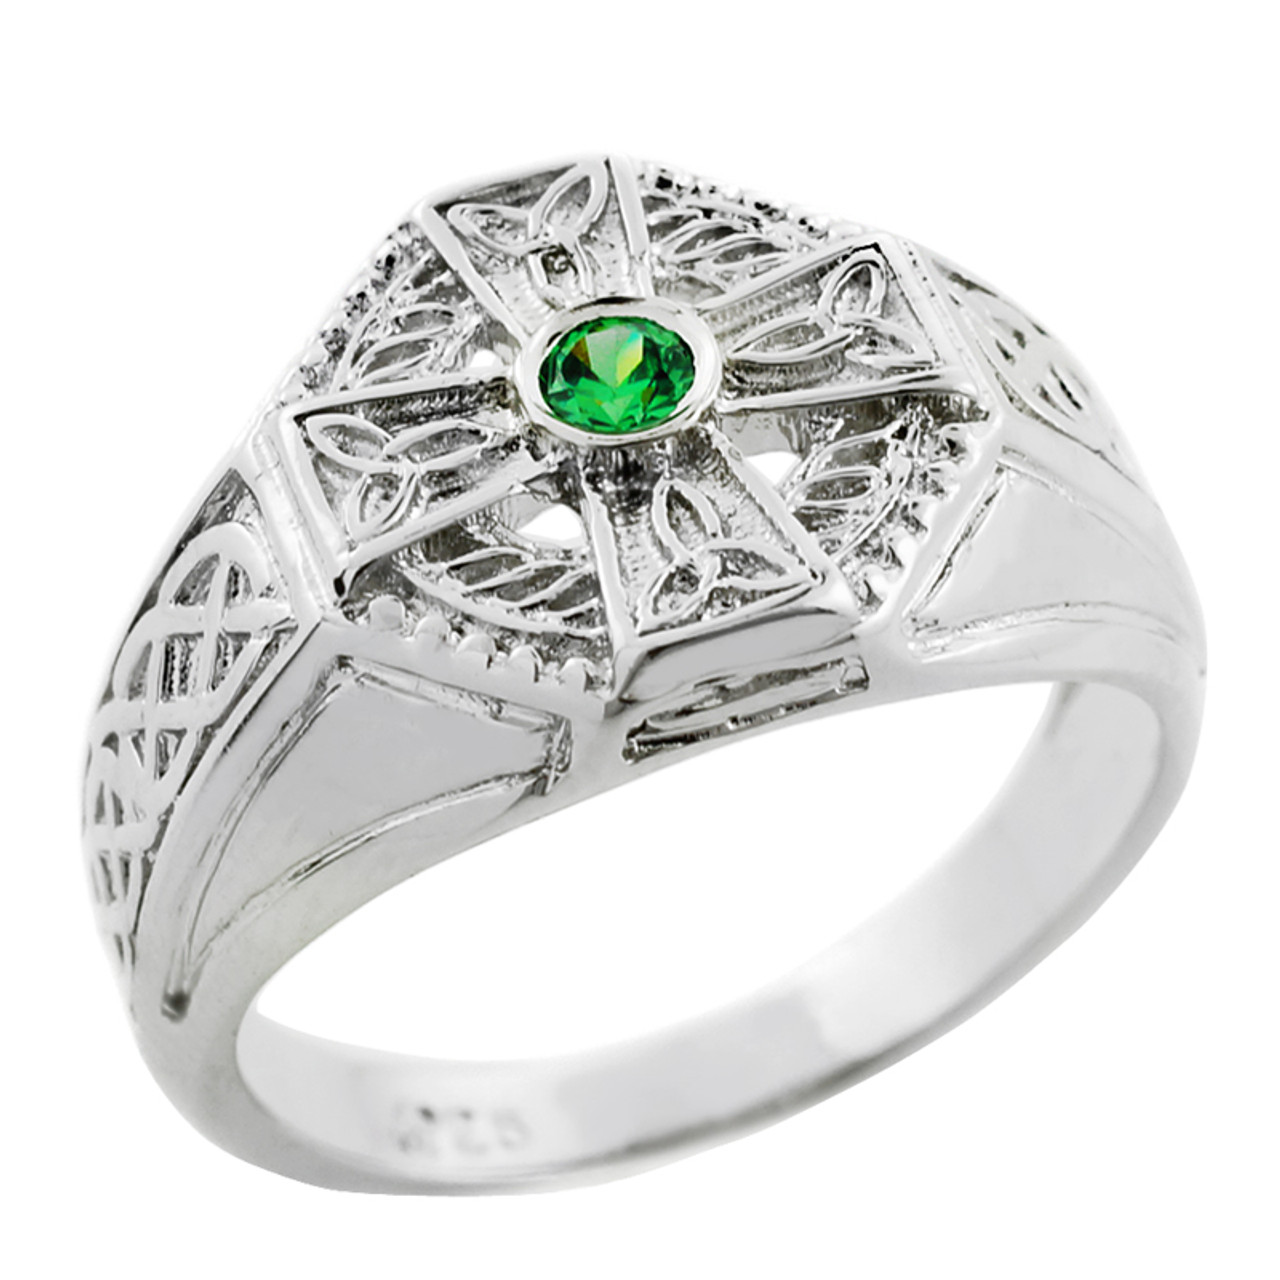 designs jewelry mens kinetic jewellery ring wedding product